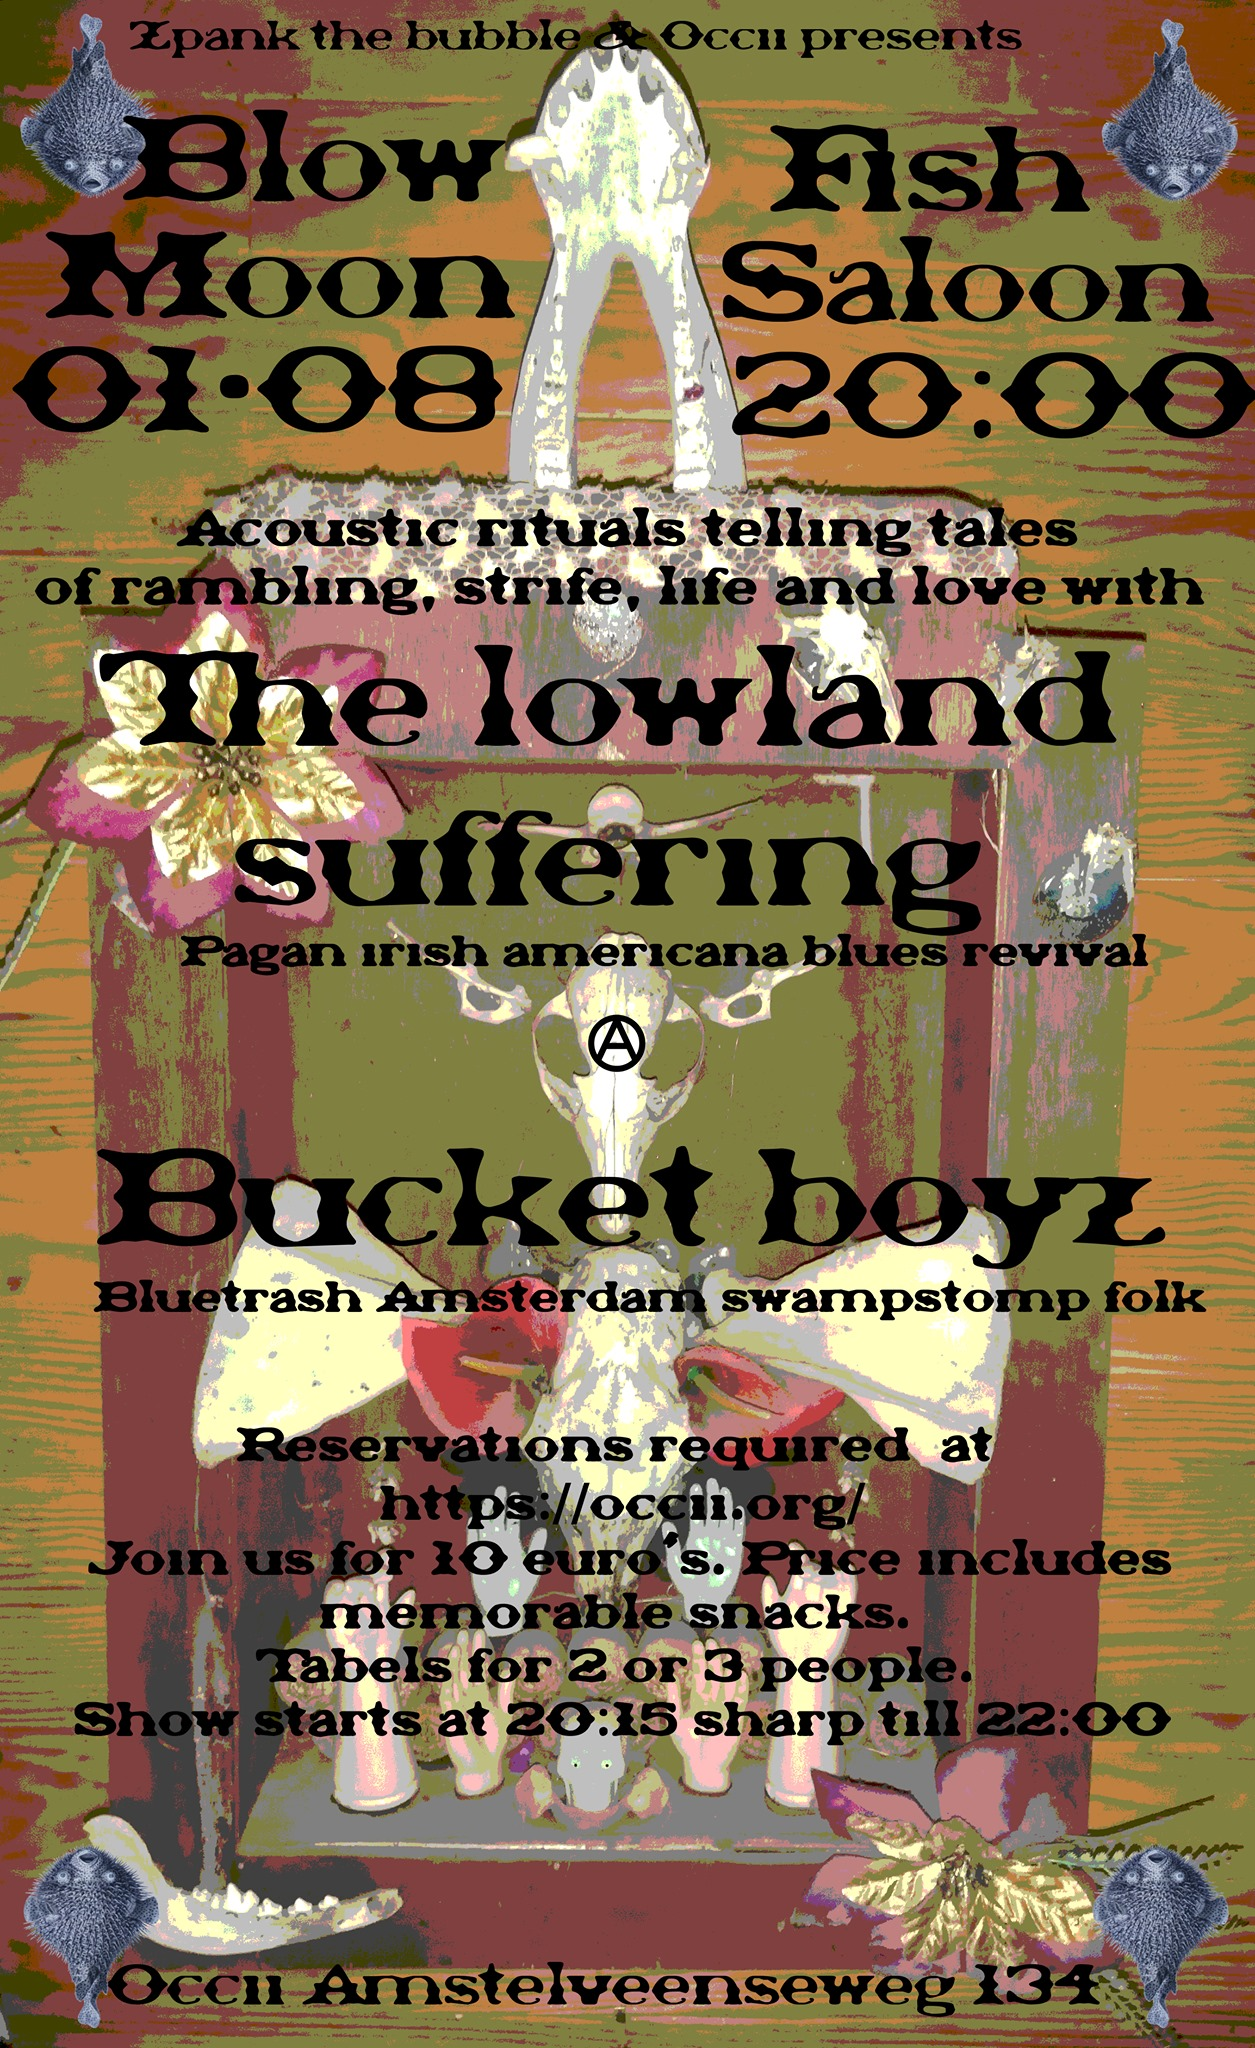 !SOLD OUT! THE LOWLAND SUFFERING + THE BUCKET BOYZ